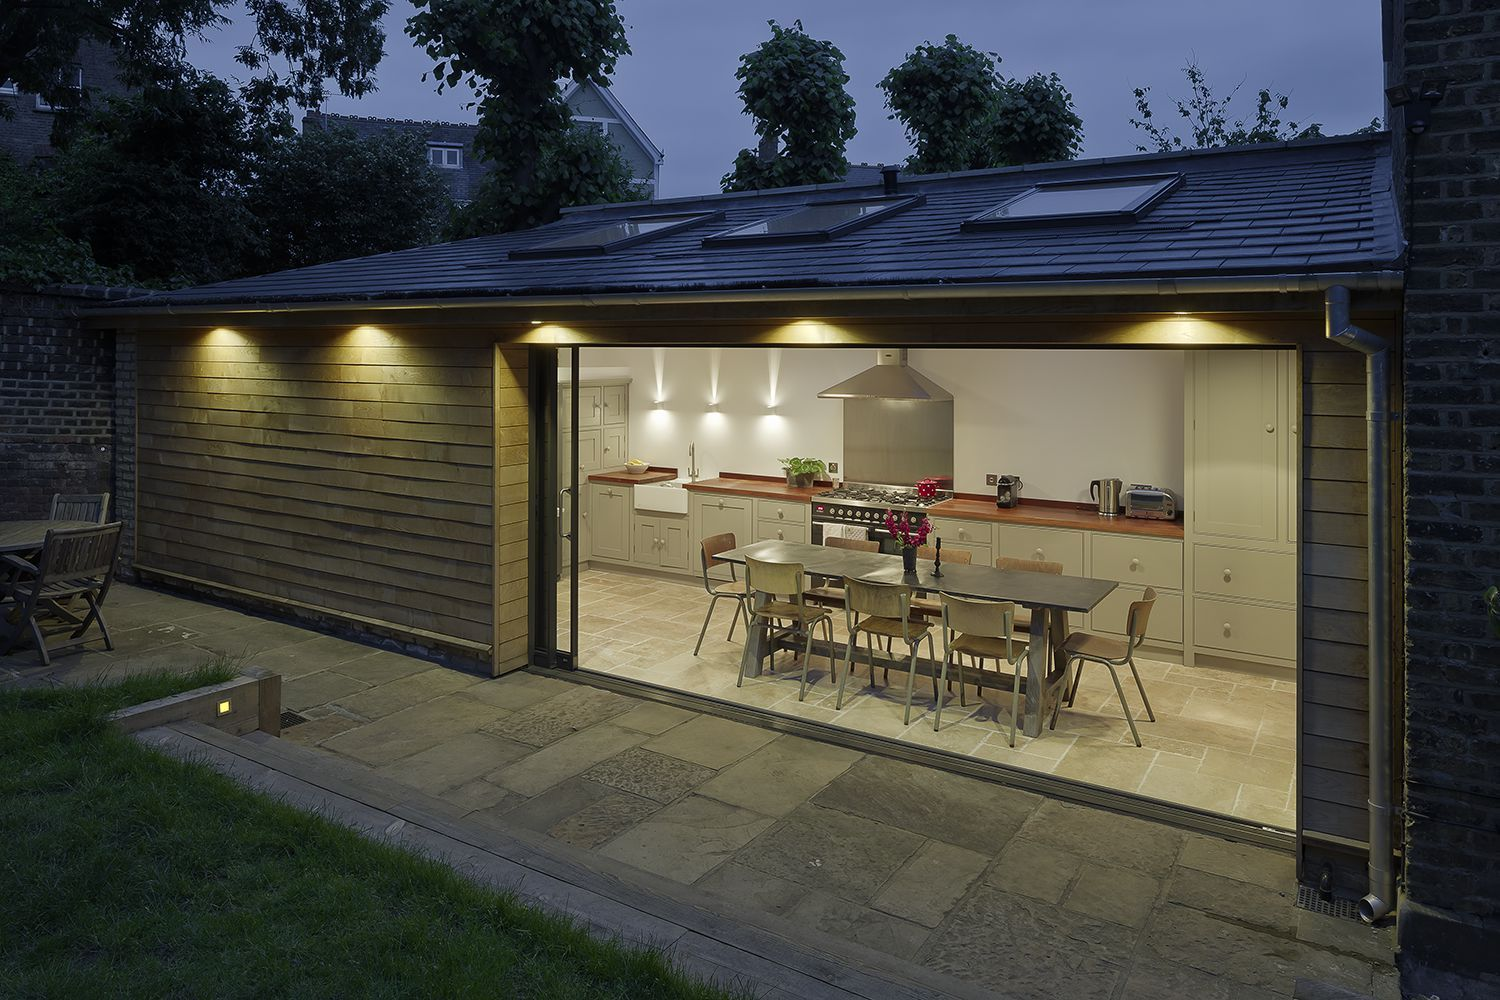 Local and 'Lofty'   Turner and Hoskins Architects